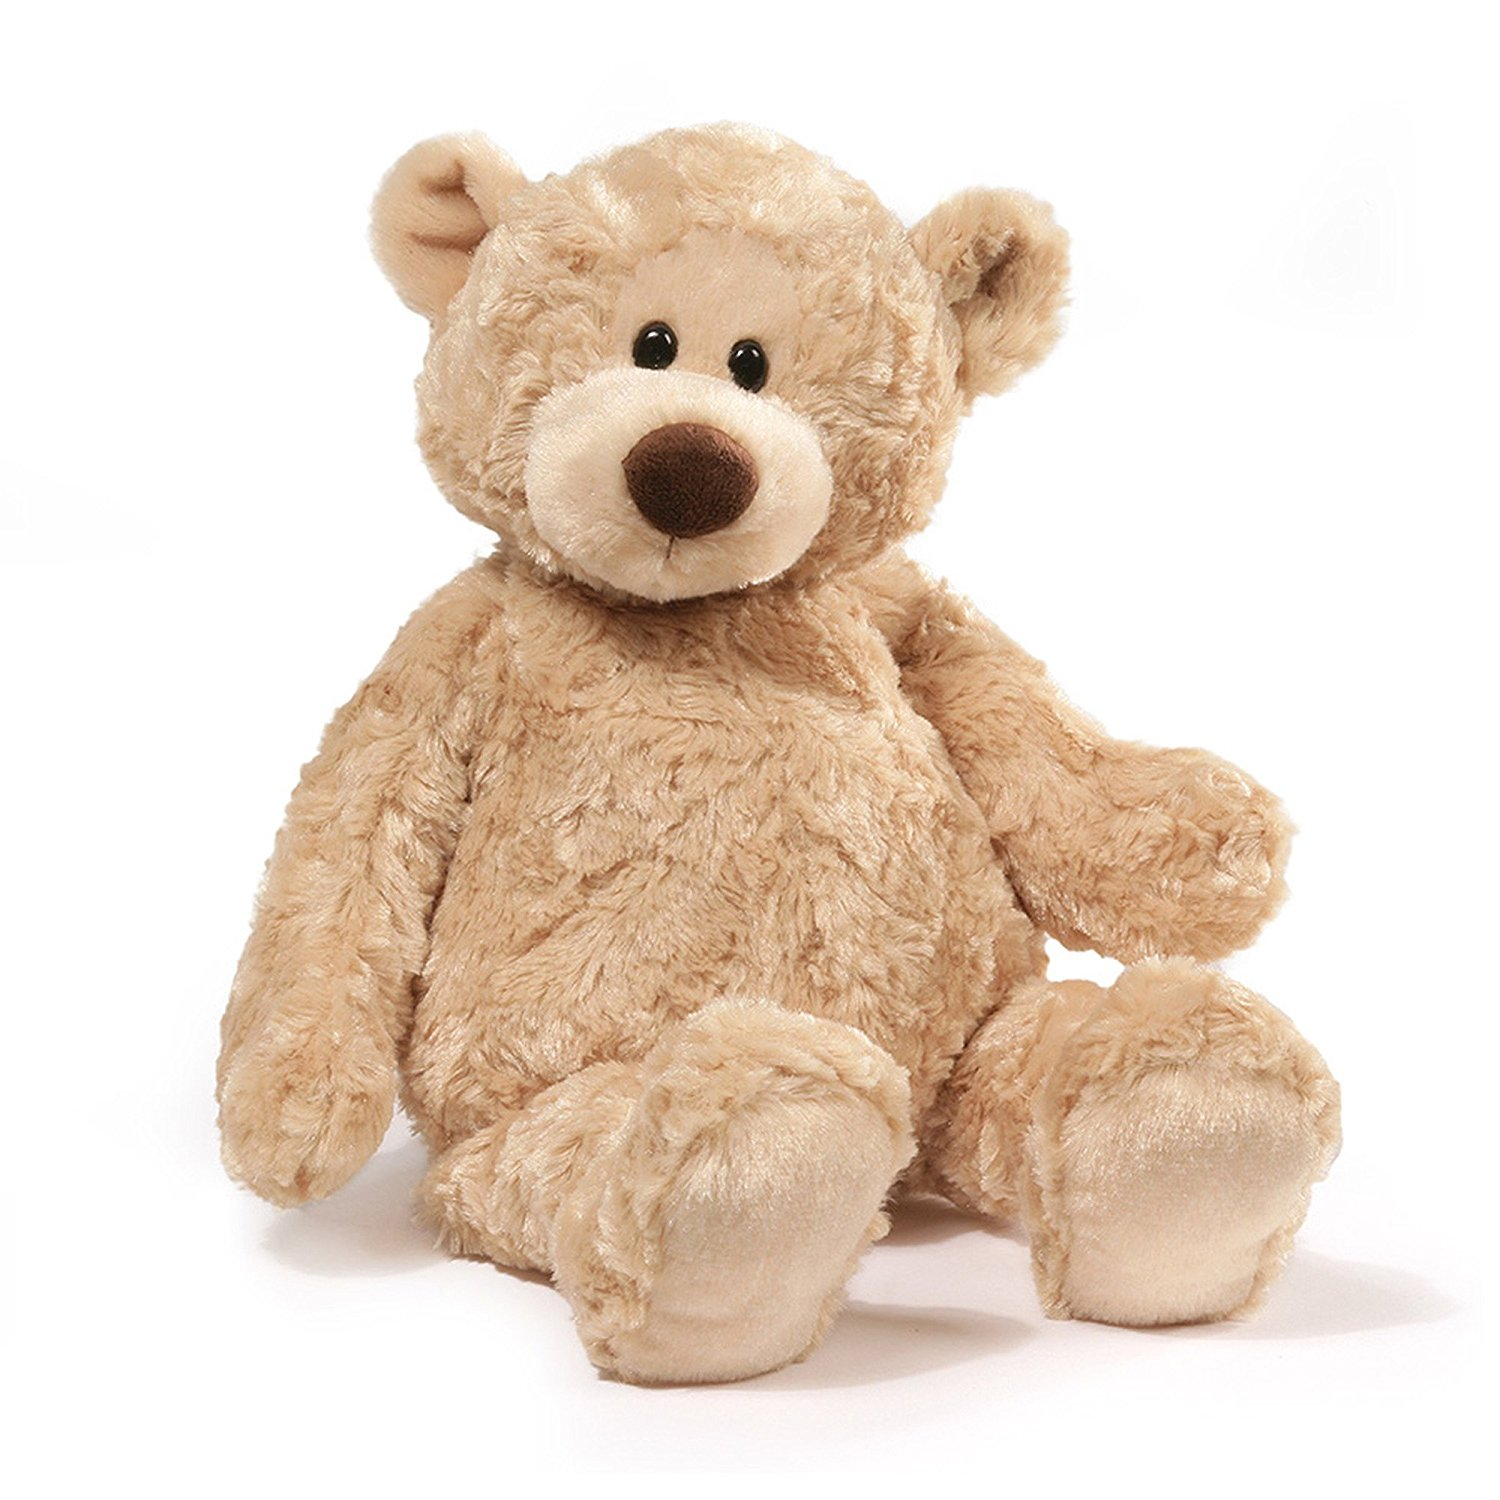 Gund Manni Beige Teddy Bear Stuffed Animal, 16 inches by Gund